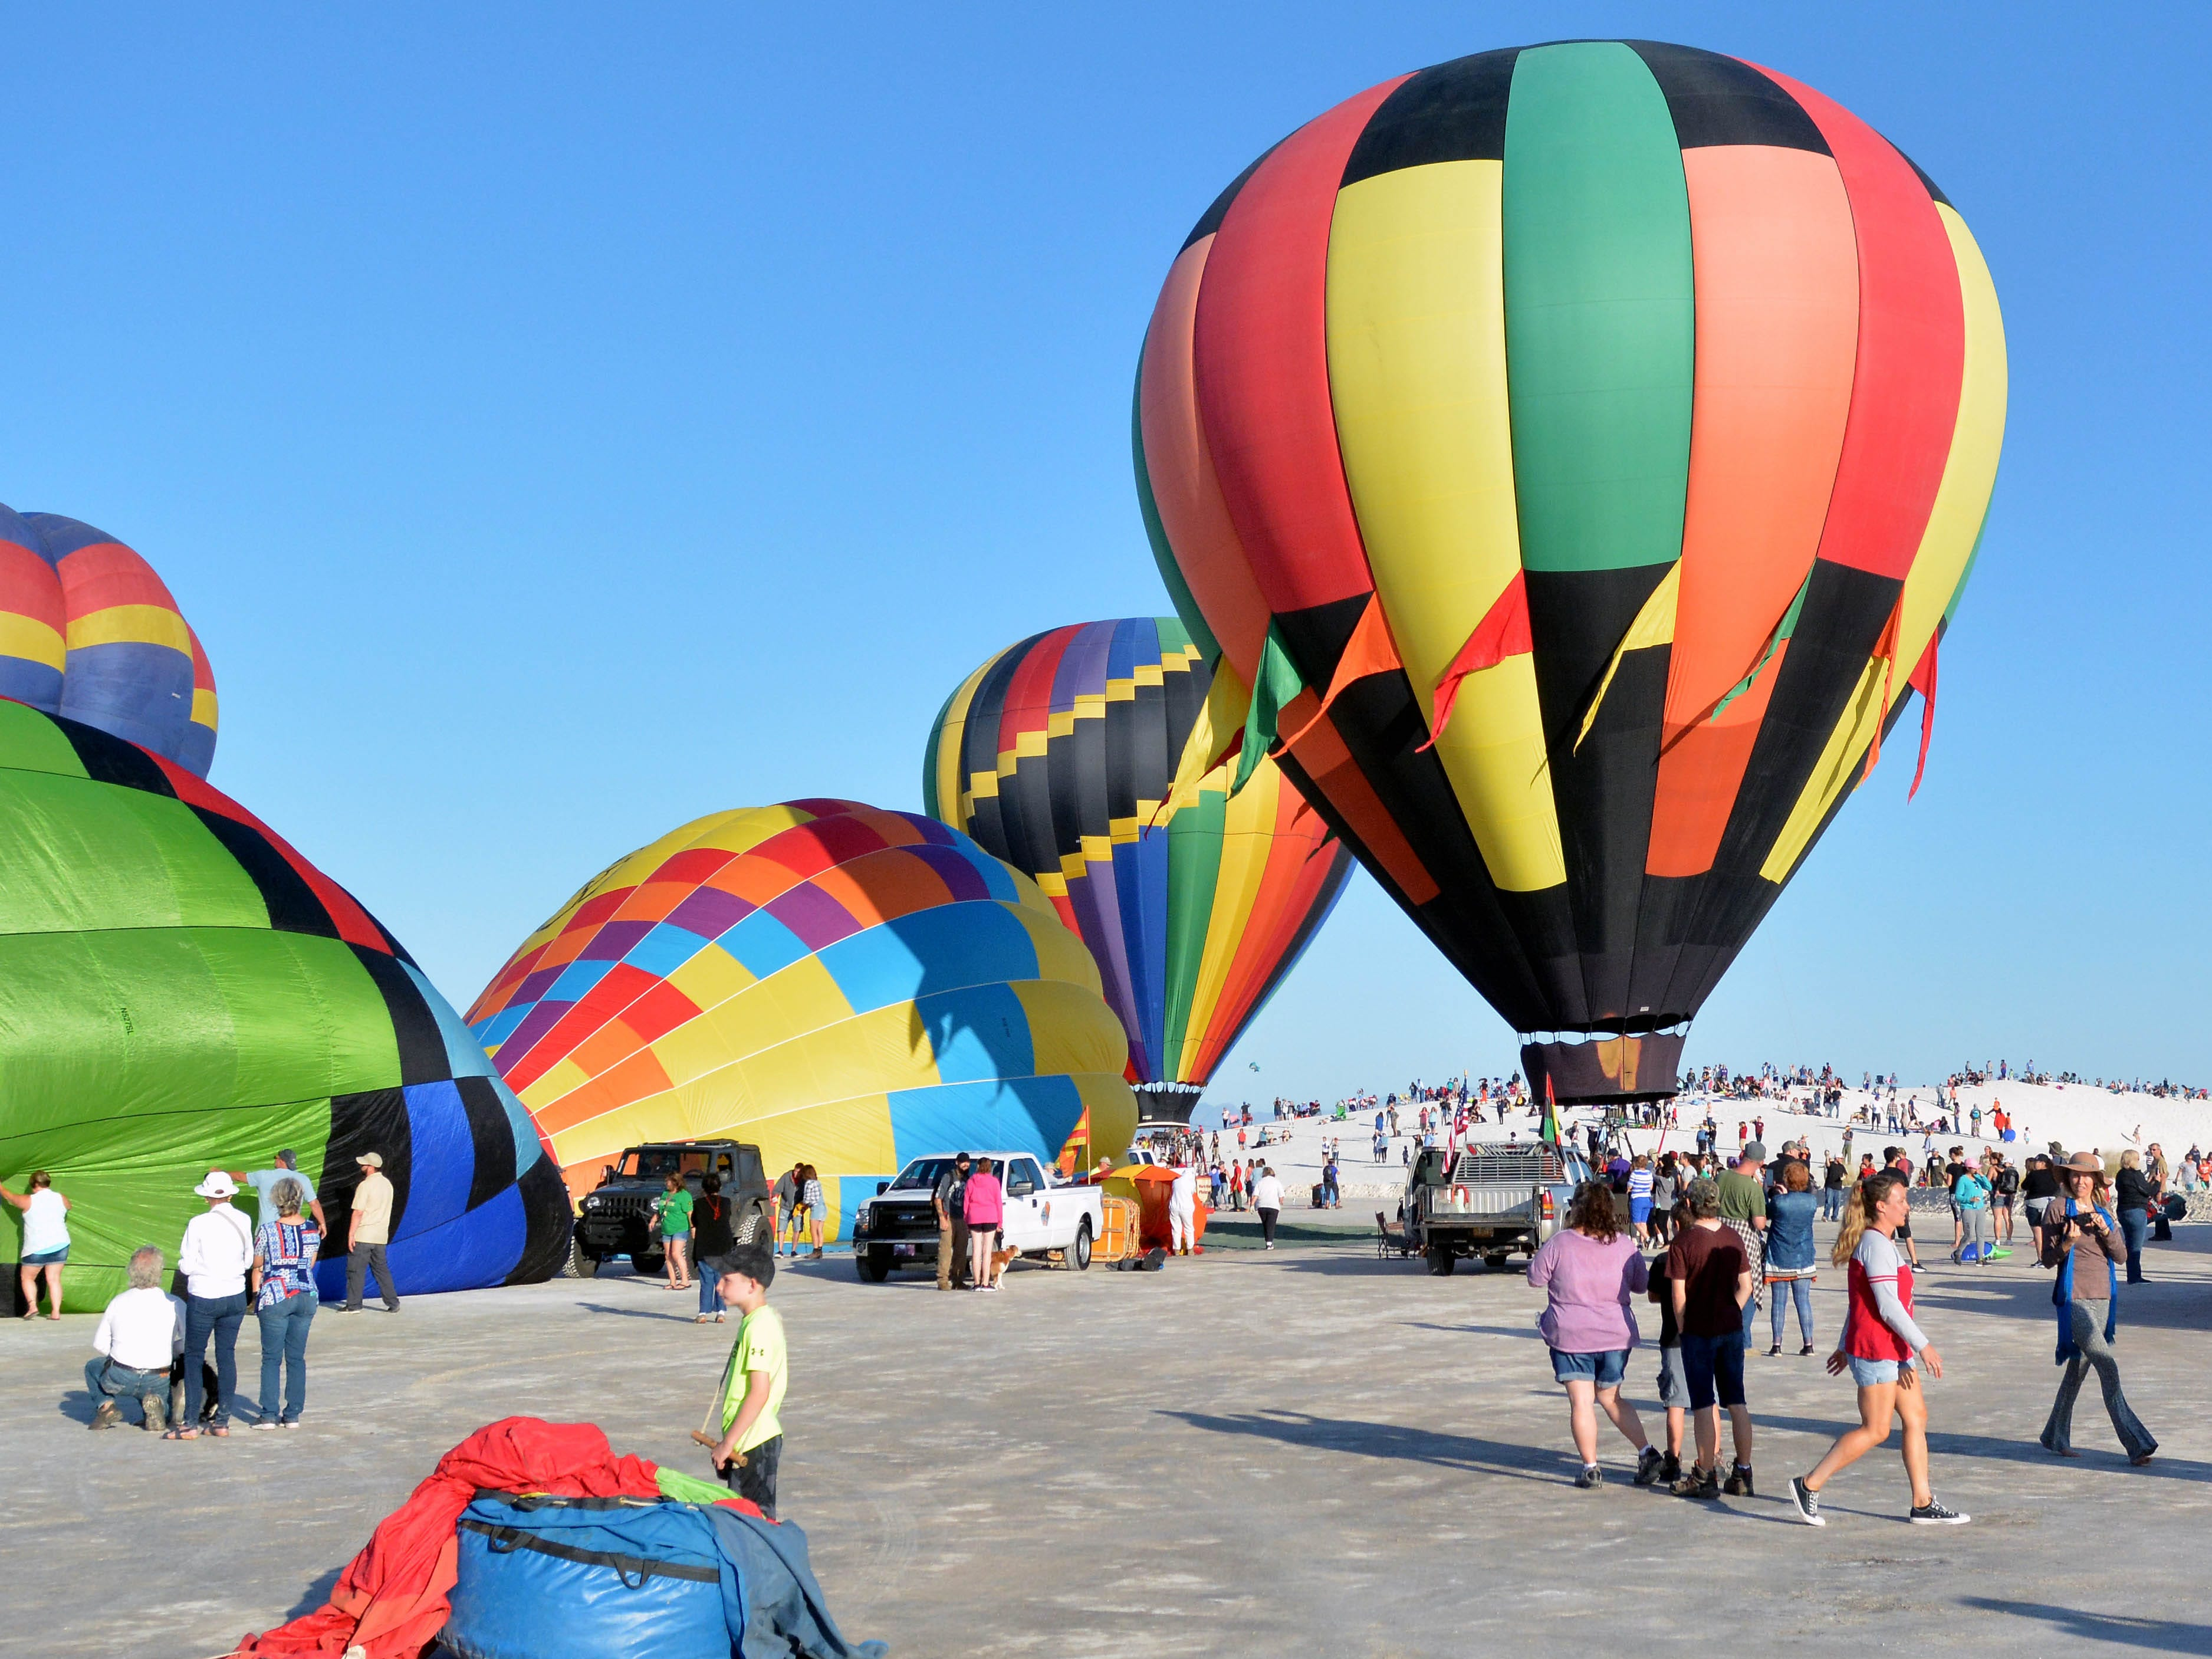 Balloons start to inflate as spectators line the dunes Saturday, Sept. 15, 2018 at the White Sands Balloon Invitational.